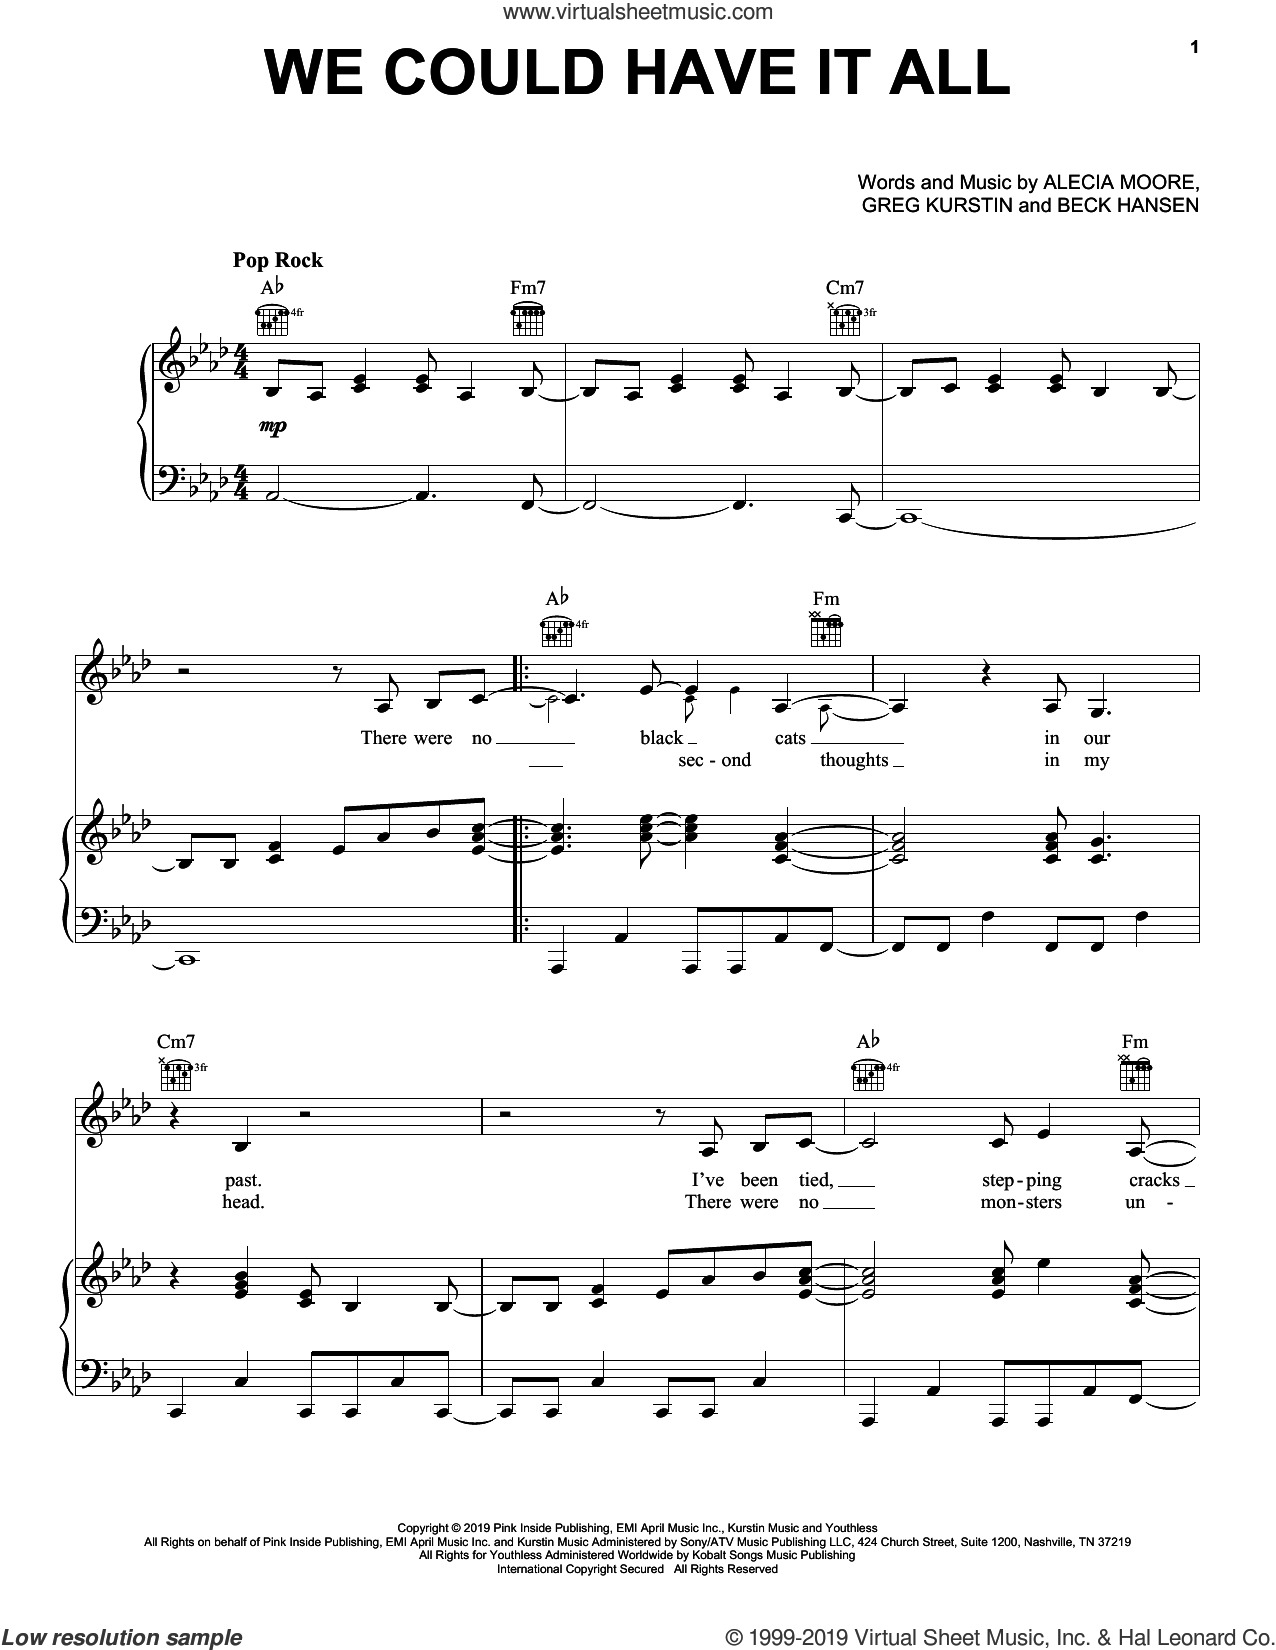 We Could Have It All sheet music for voice, piano or guitar by Beck Hansen, Miscellaneous, P!nk, Alecia Moore and Greg Kurstin, intermediate skill level